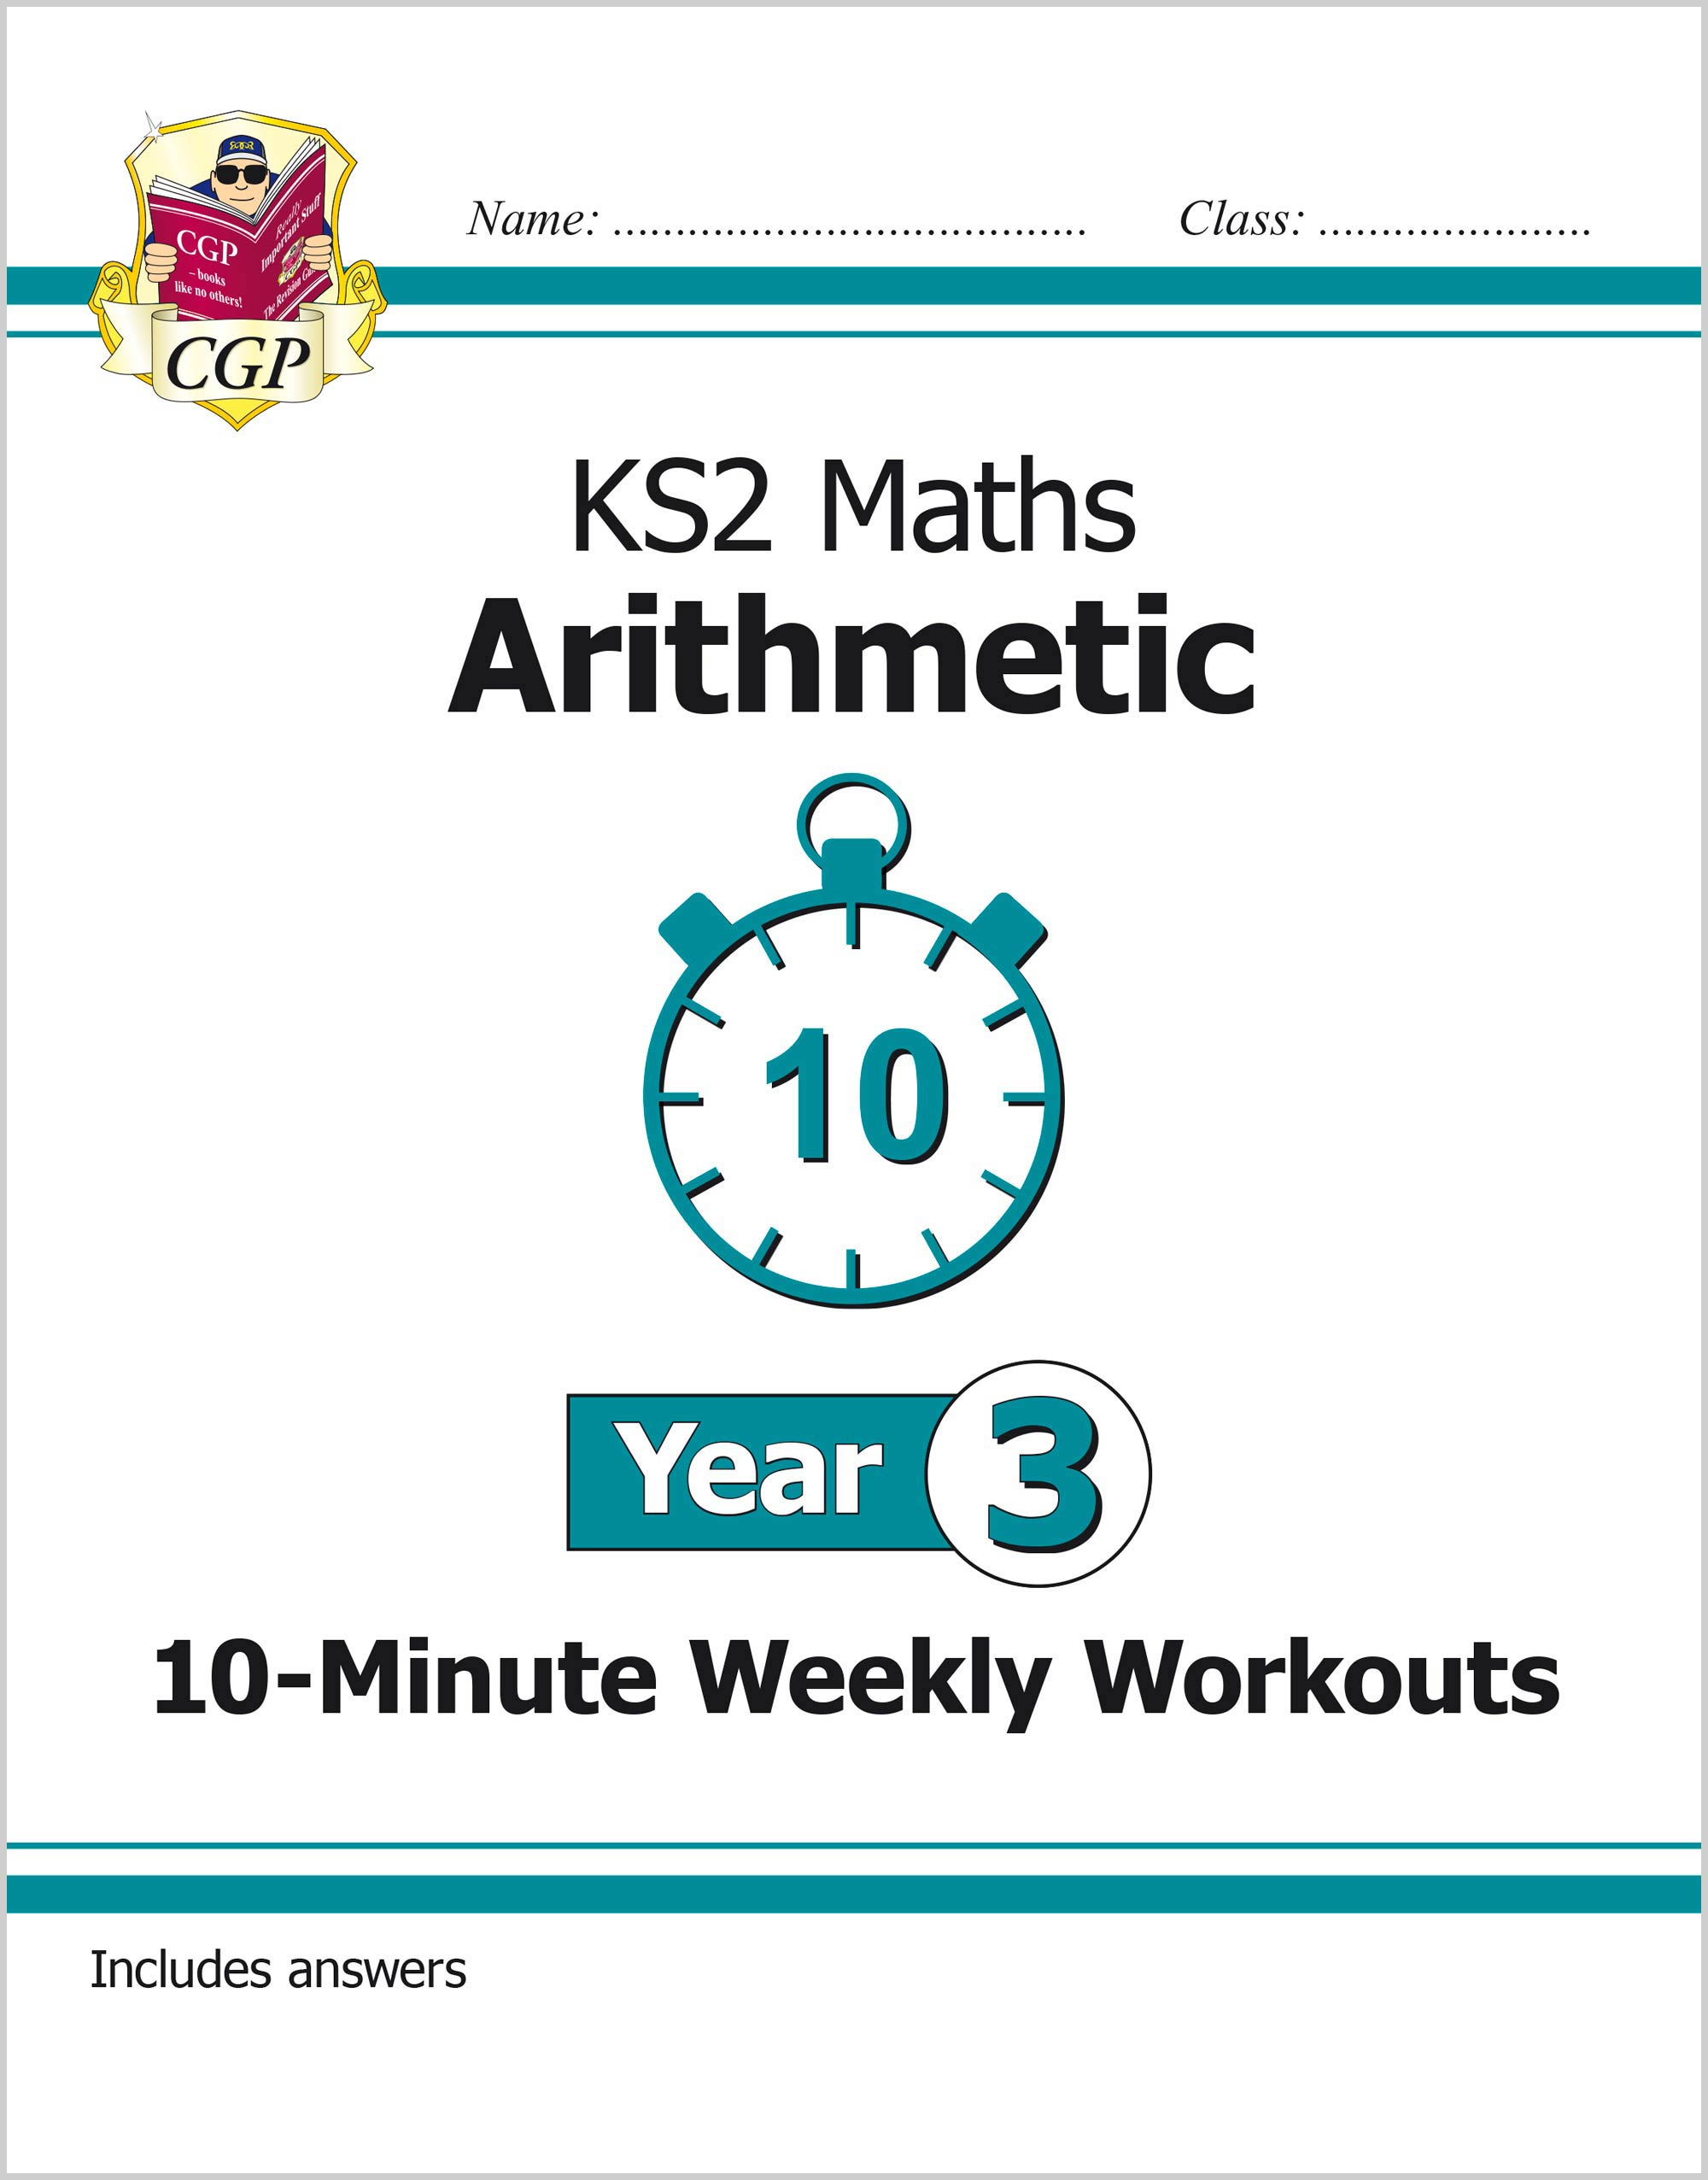 M3ARXW21 - New KS2 Maths 10-Minute Weekly Workouts: Arithmetic - Year 3